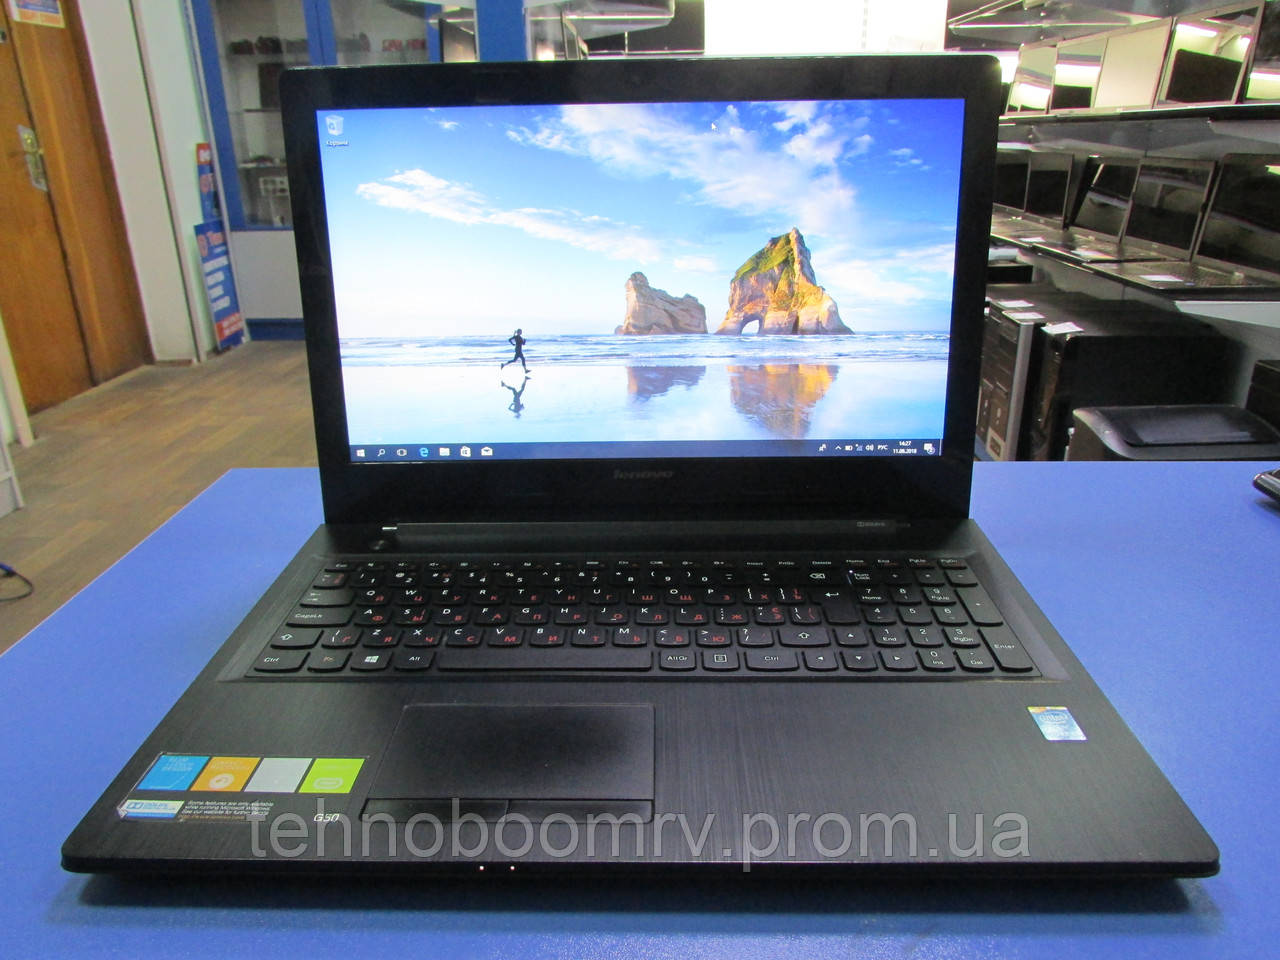 Для учёбы!Lenovo G50/ Intel i3-4005U 1.7GHz/DDR3 4GB/HDD 500GB